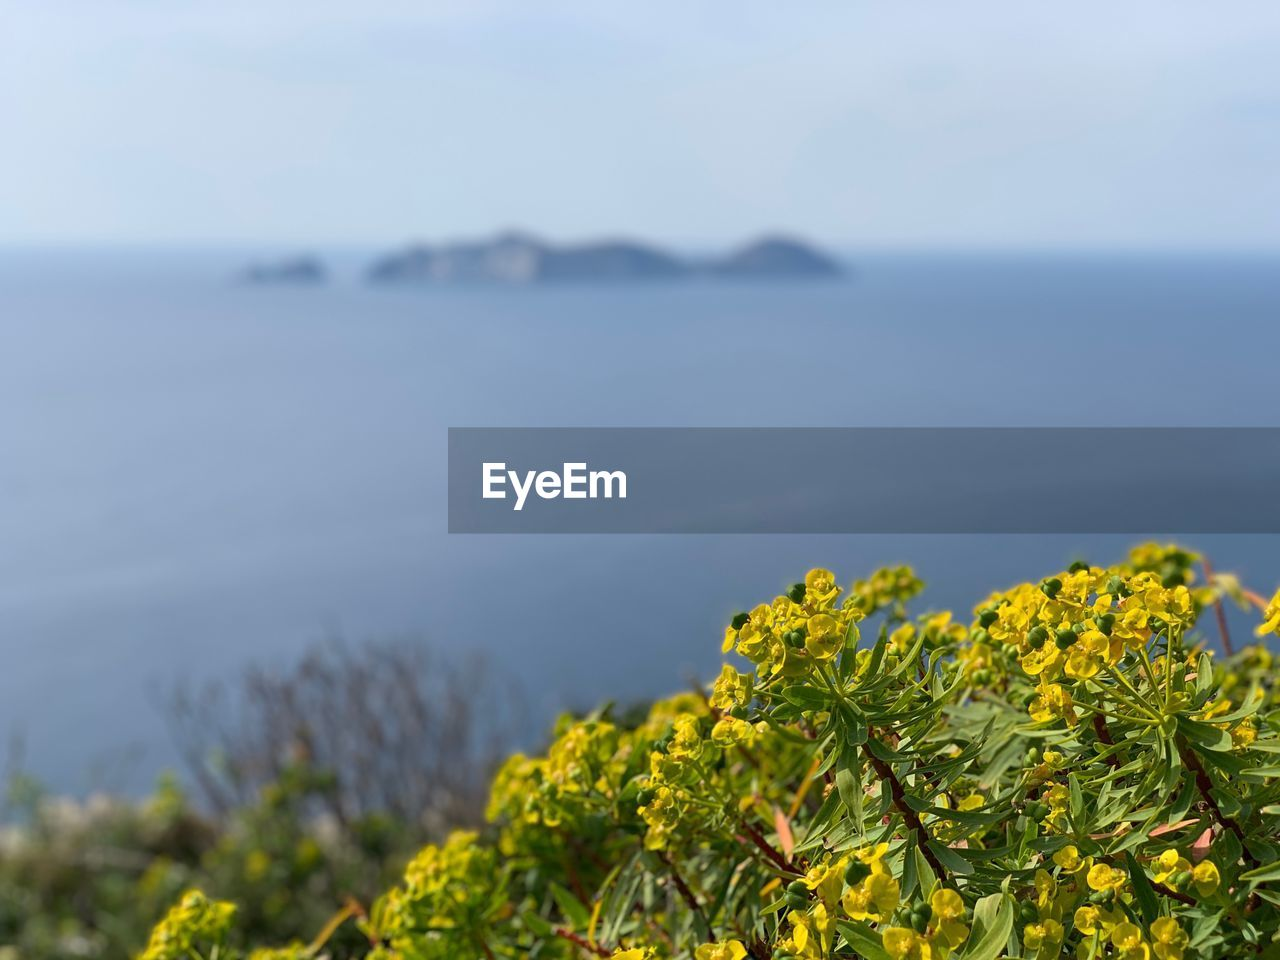 beauty in nature, plant, sea, growth, nature, sky, scenics - nature, flower, tranquility, flowering plant, water, tranquil scene, day, focus on foreground, no people, yellow, land, fragility, vulnerability, outdoors